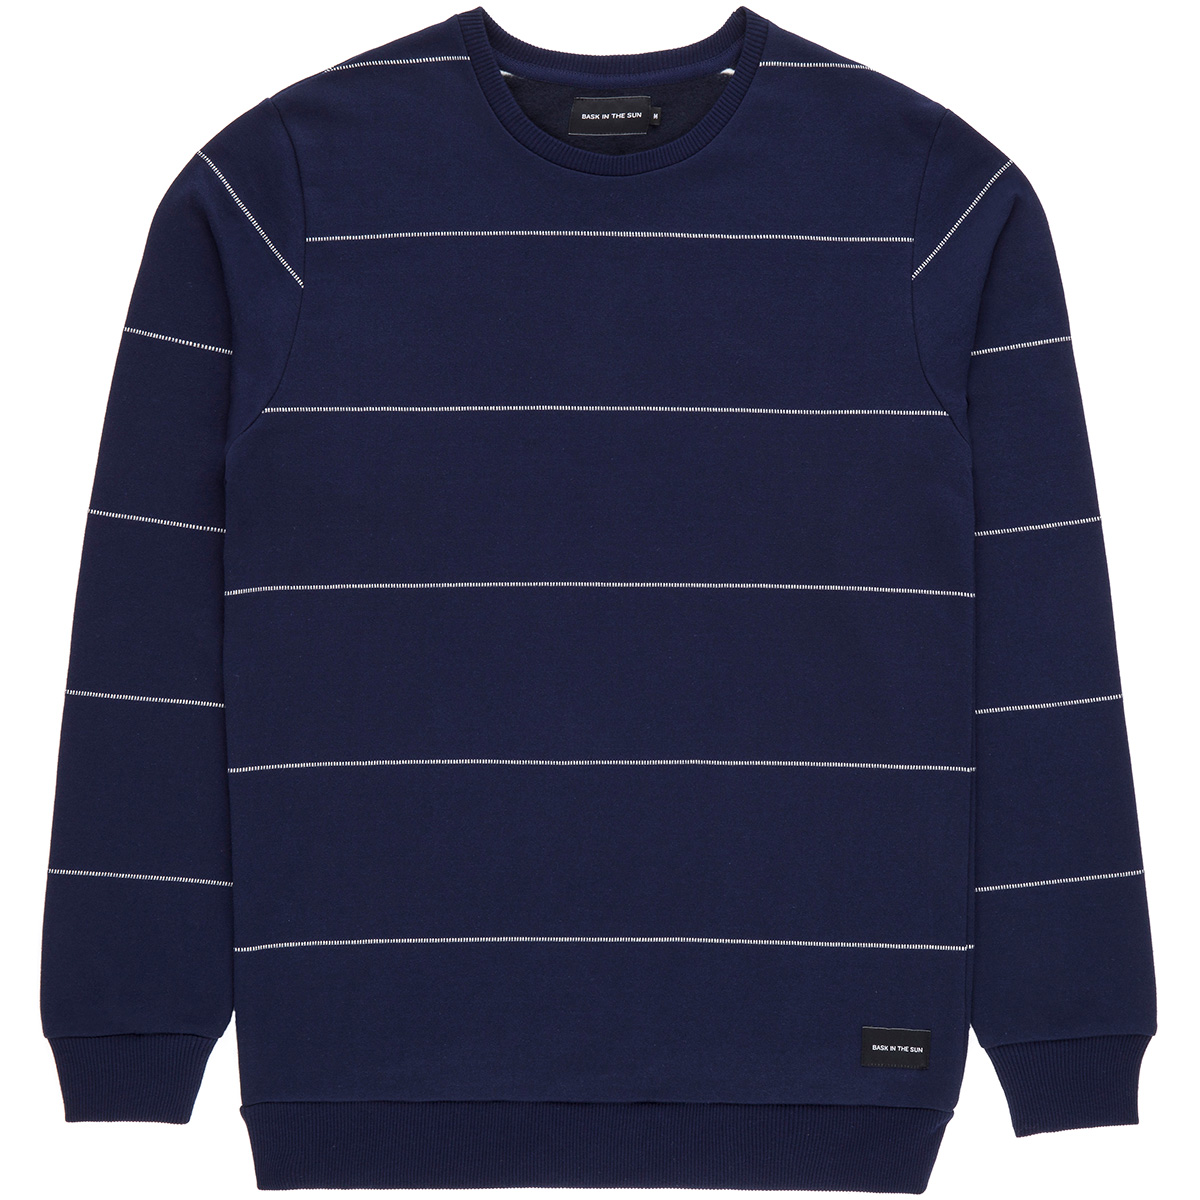 Bask in the Sun - Sweat en coton bio navy odon